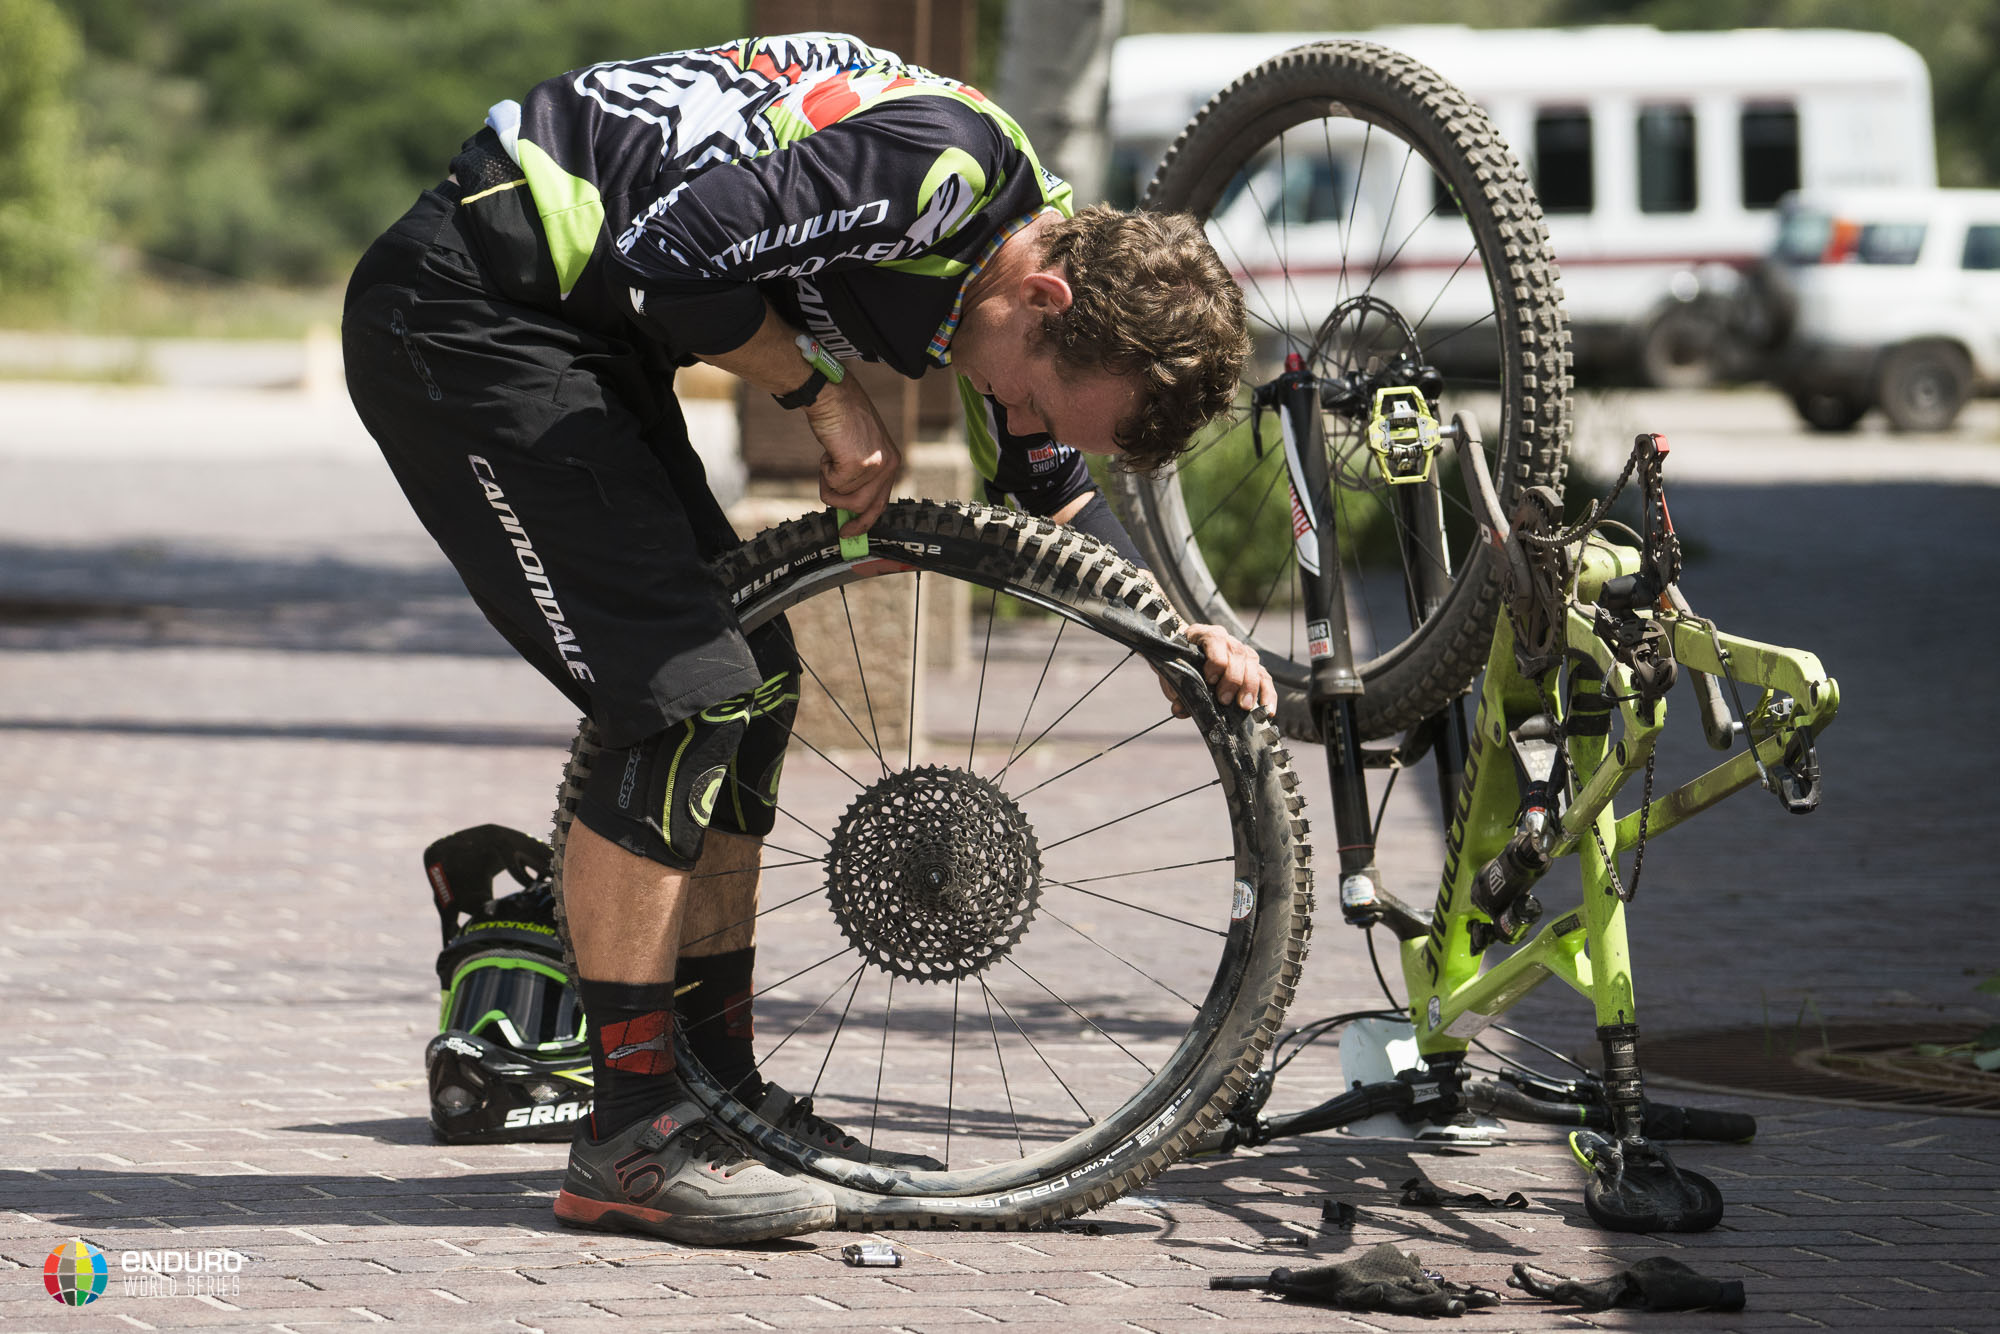 Jerome quickly to it on the bike repairs